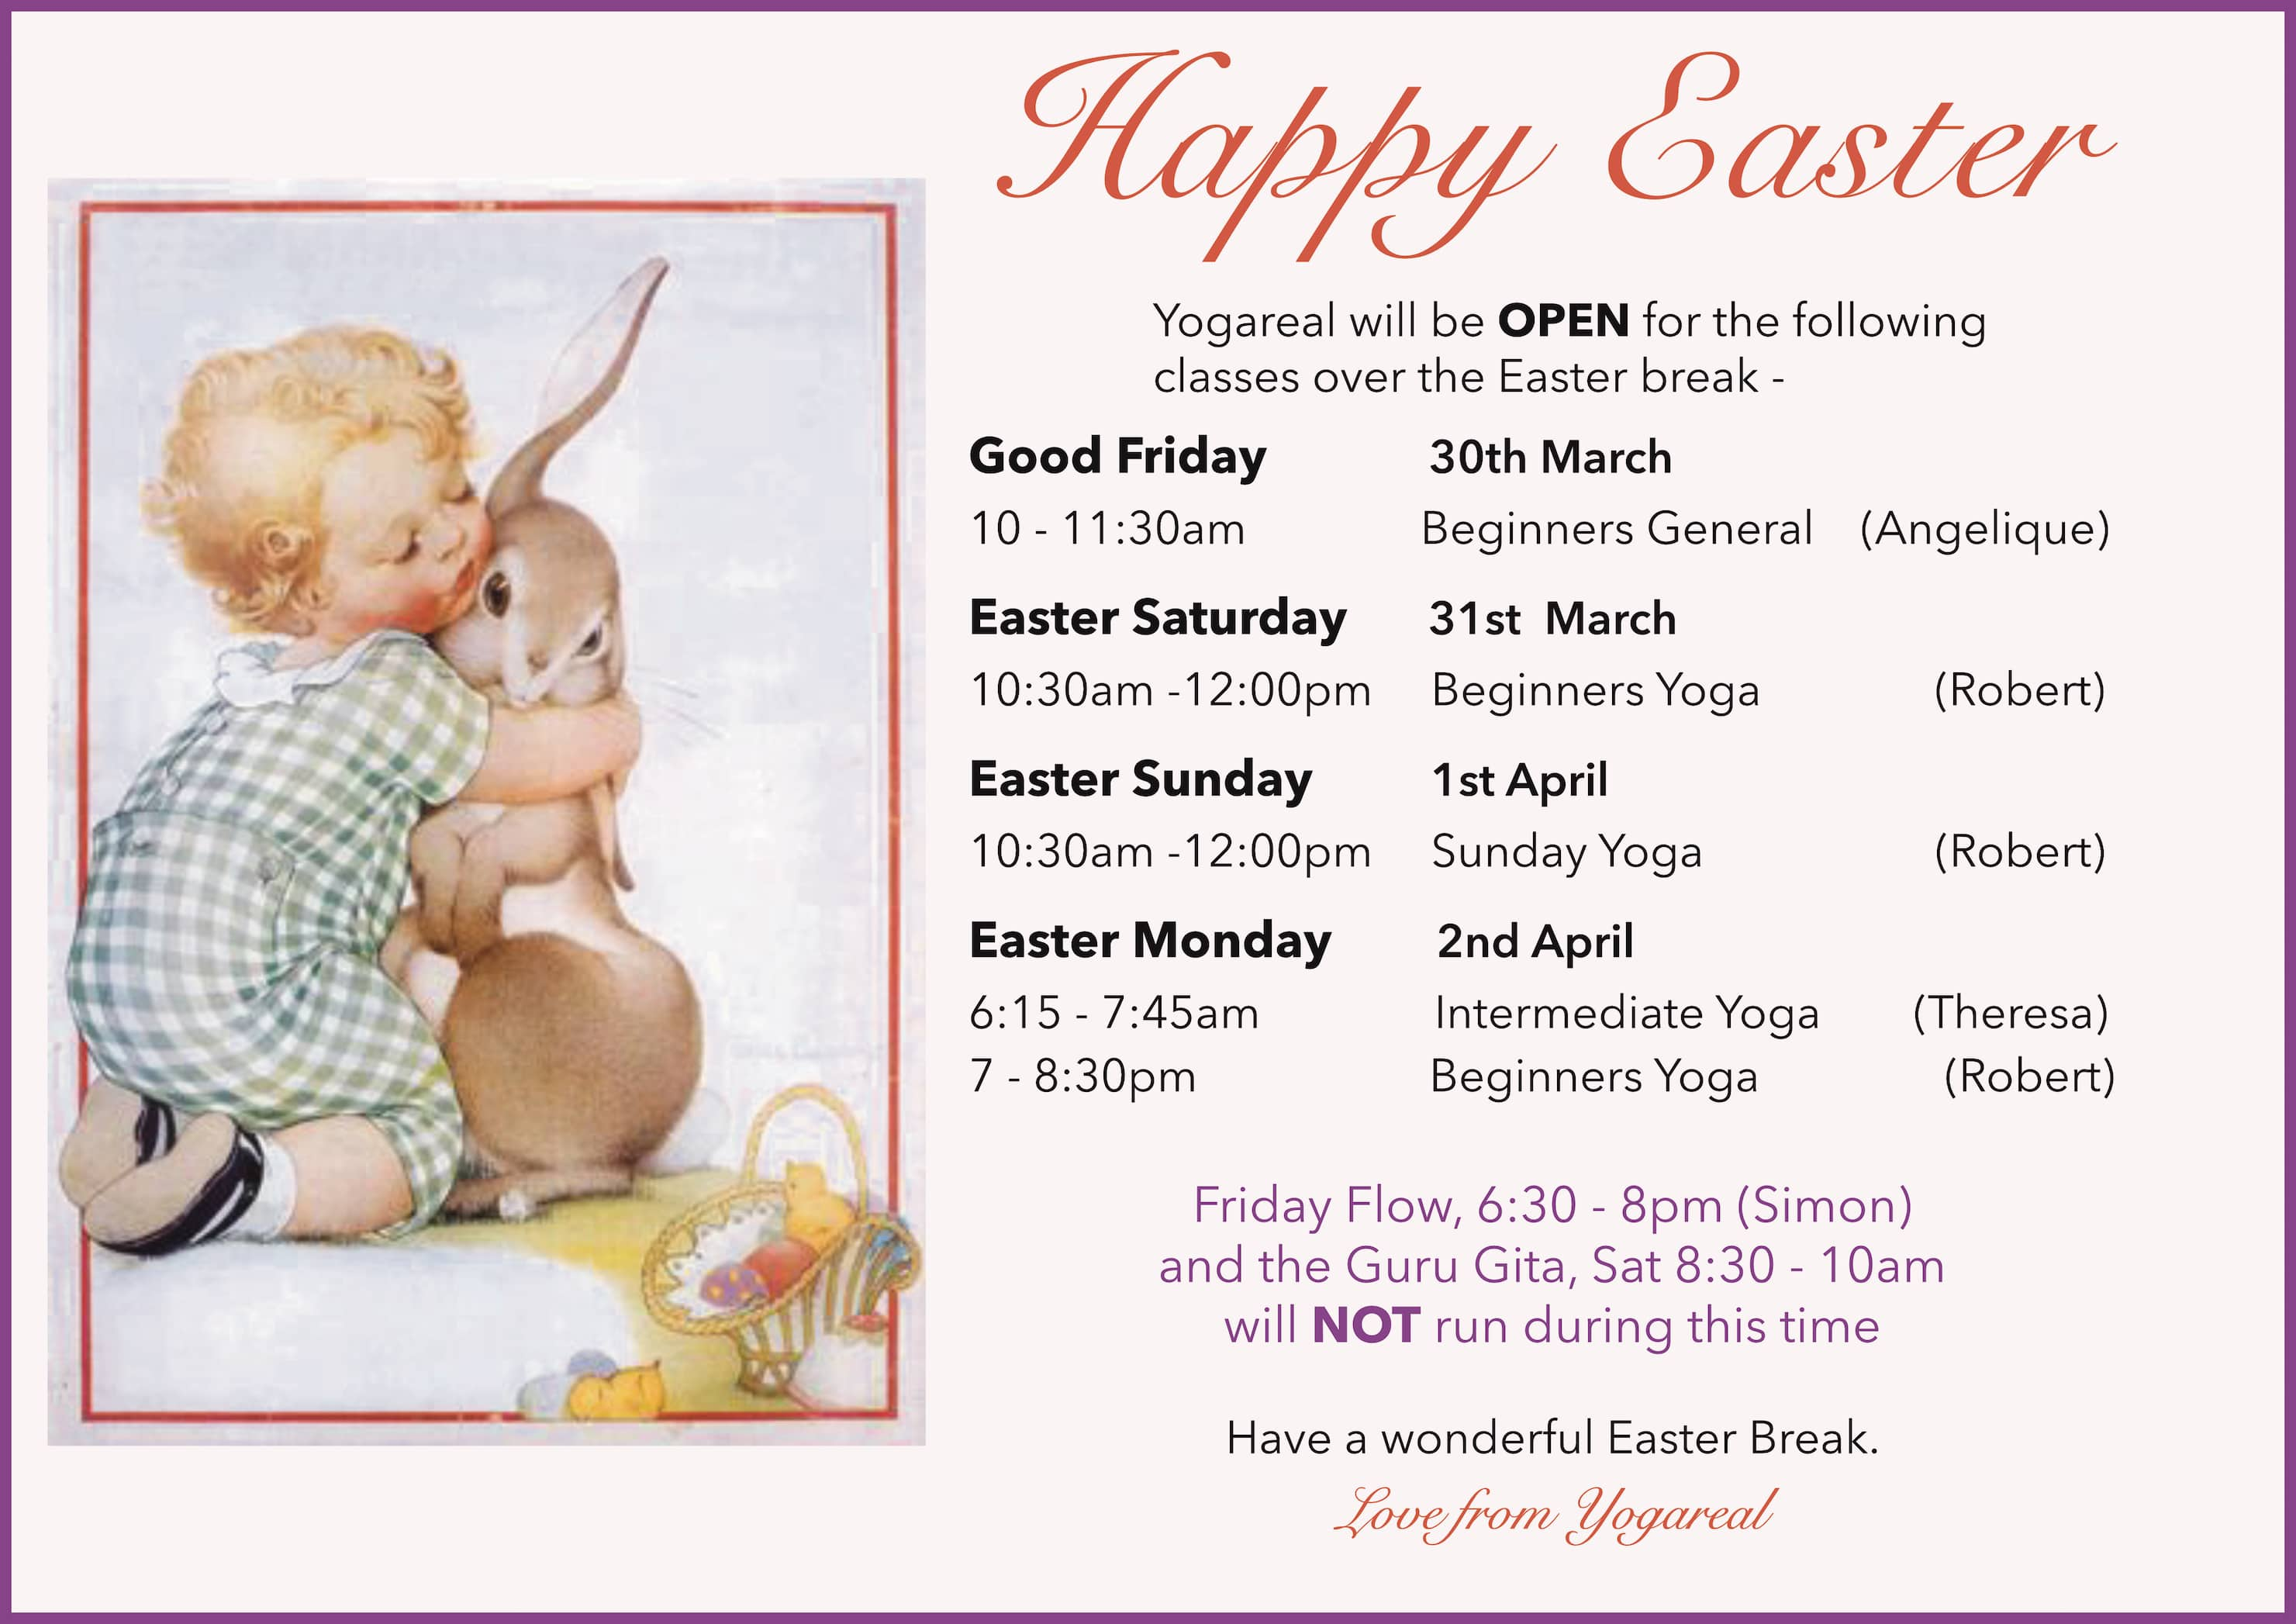 Easter-Timetable-at-Yogareal-2018.jpg